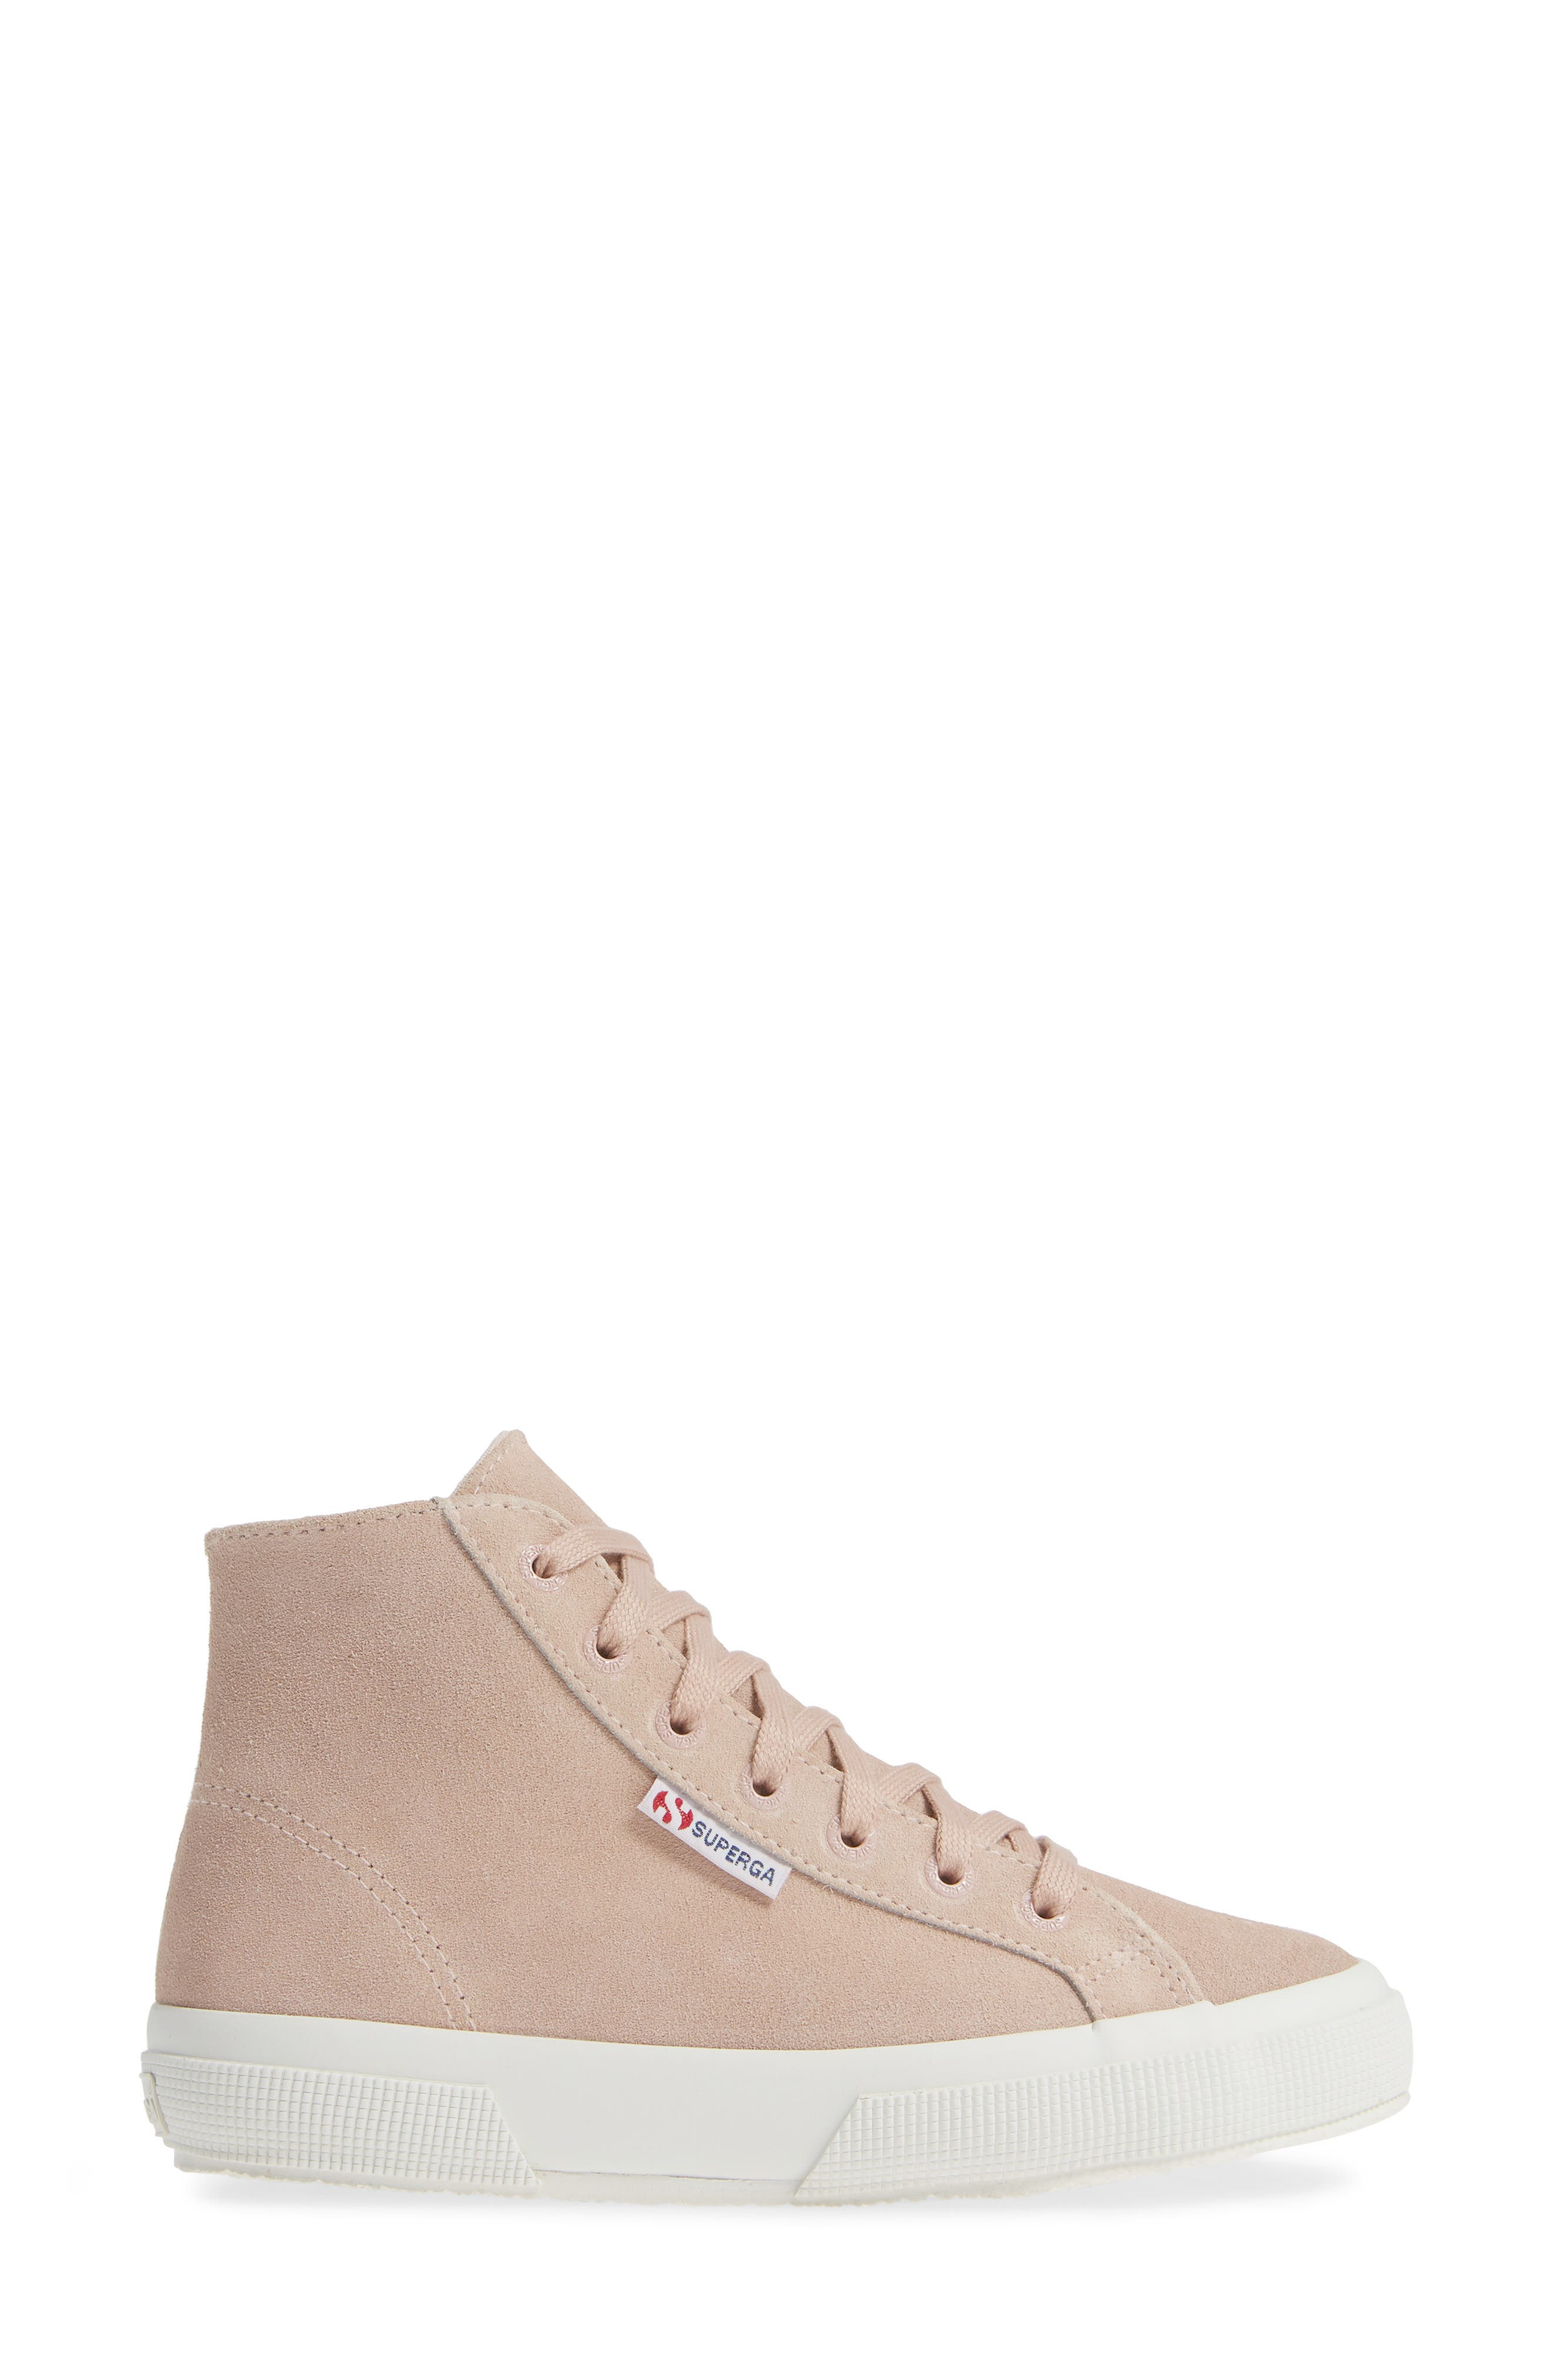 2795 High Top Sneaker,                             Alternate thumbnail 3, color,                             ROSE SUEDE